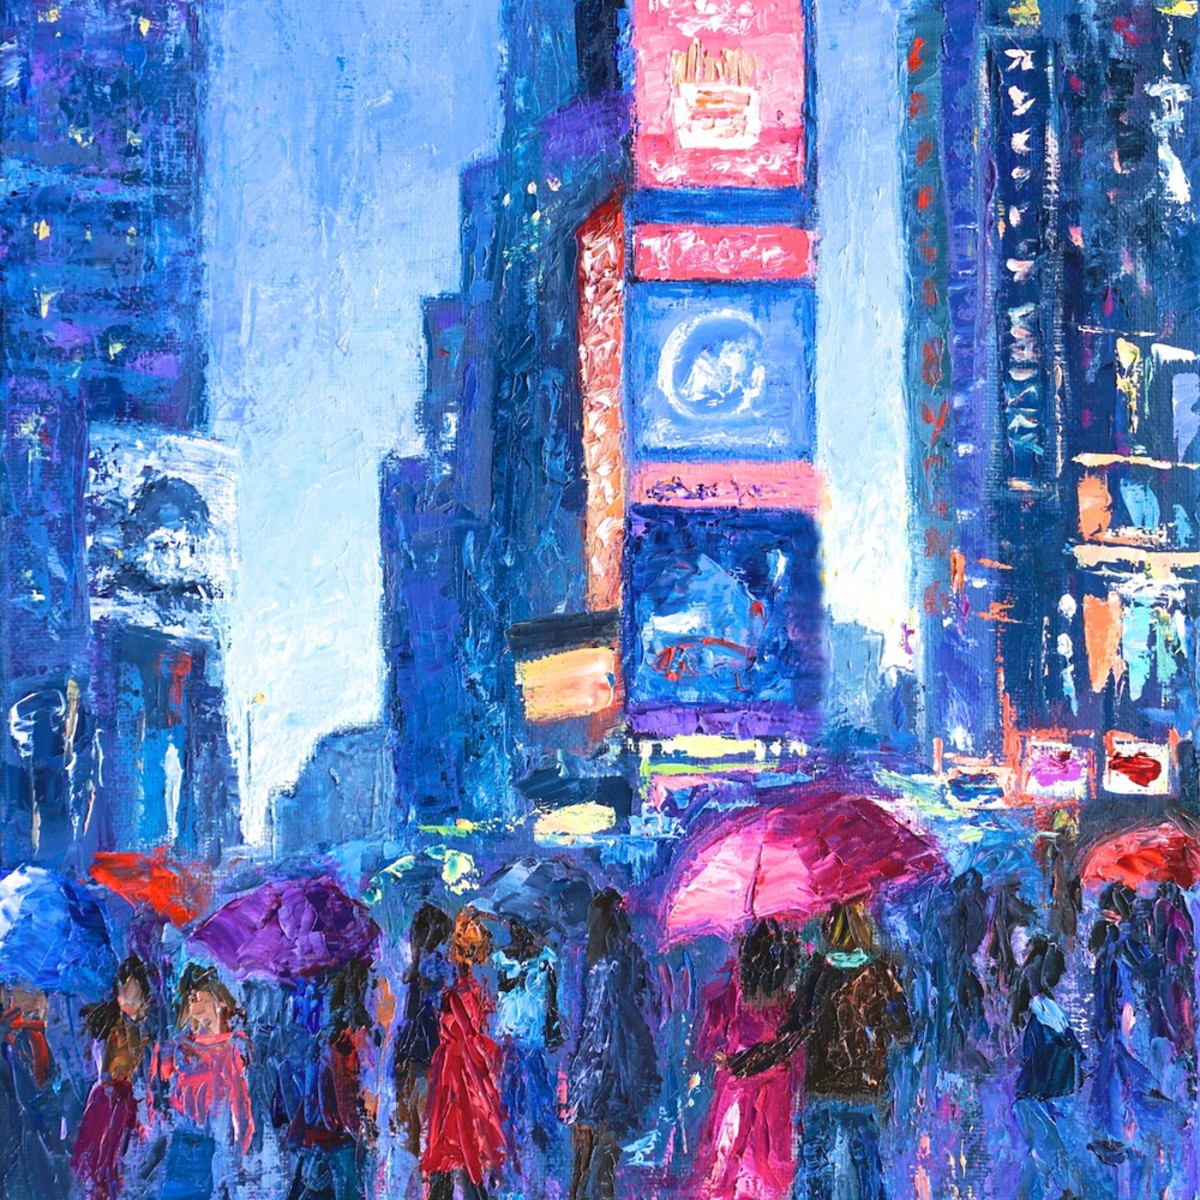 Lovers walk in times square rain ii 288 copy ybyshe